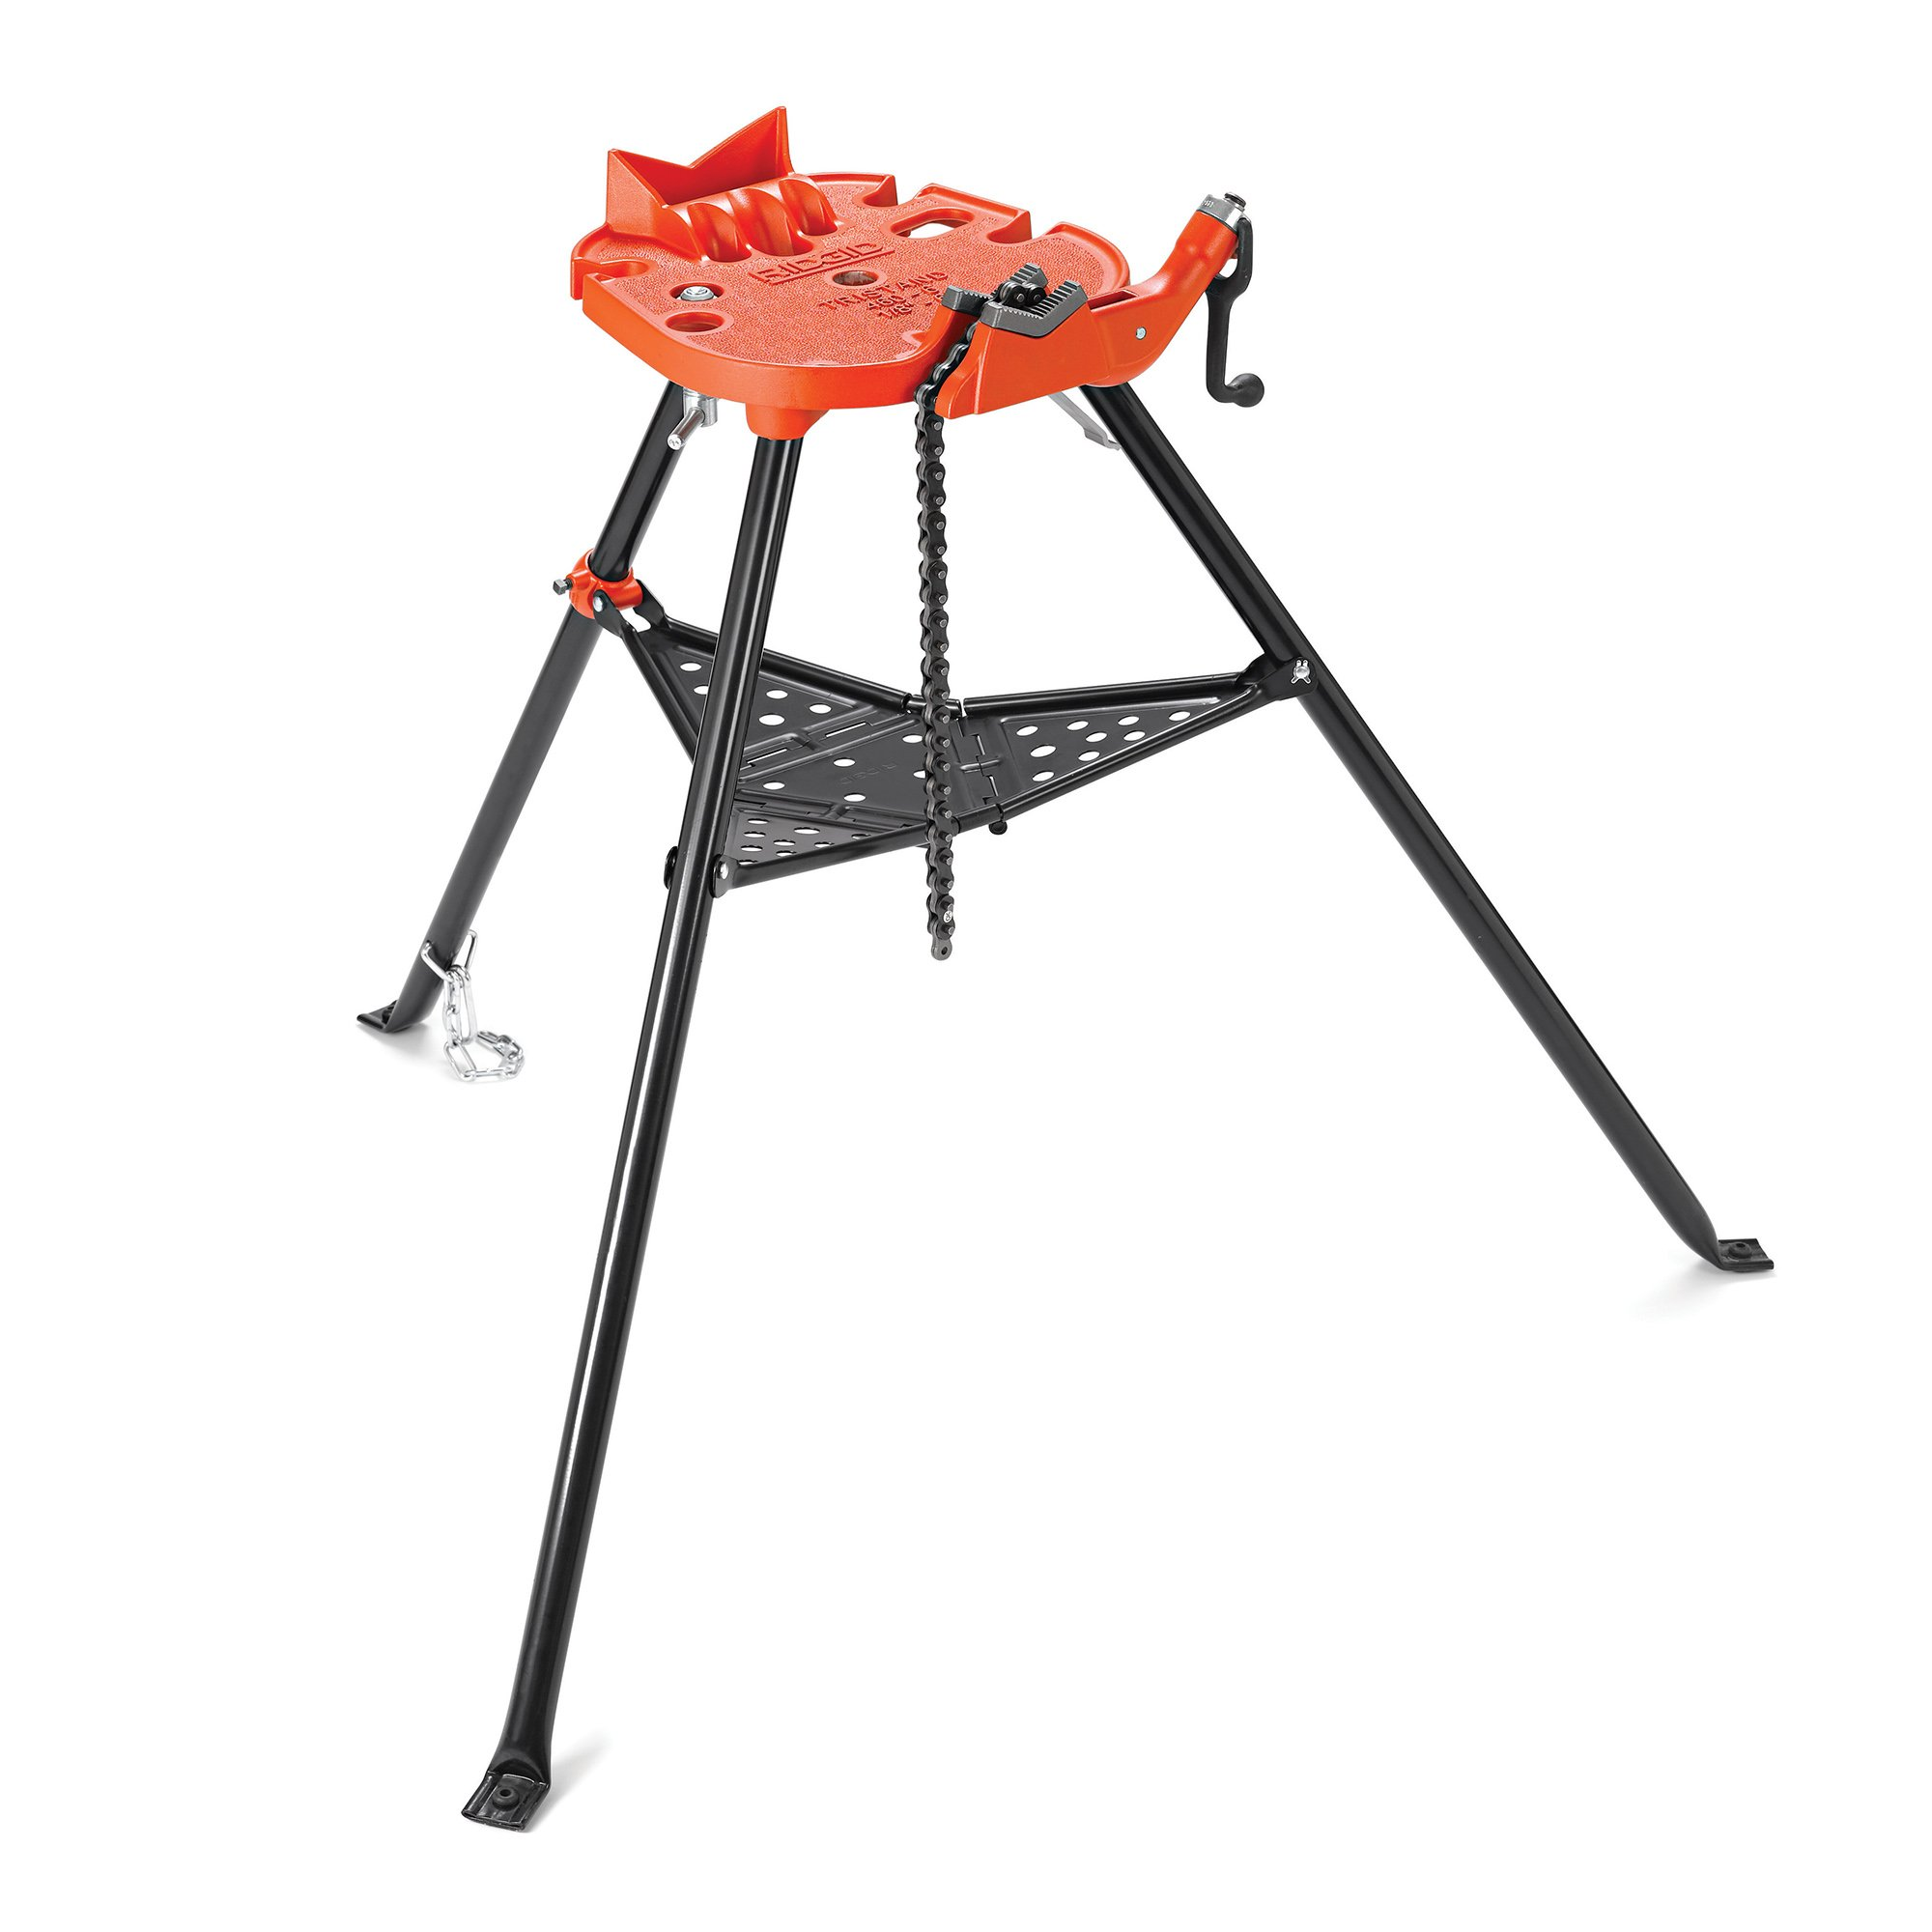 RIDGID 36273 Model 460-6 Portable TRISTAND Chain Vise, 1/8-inch to 6-inch Pipe Vise by Ridgid